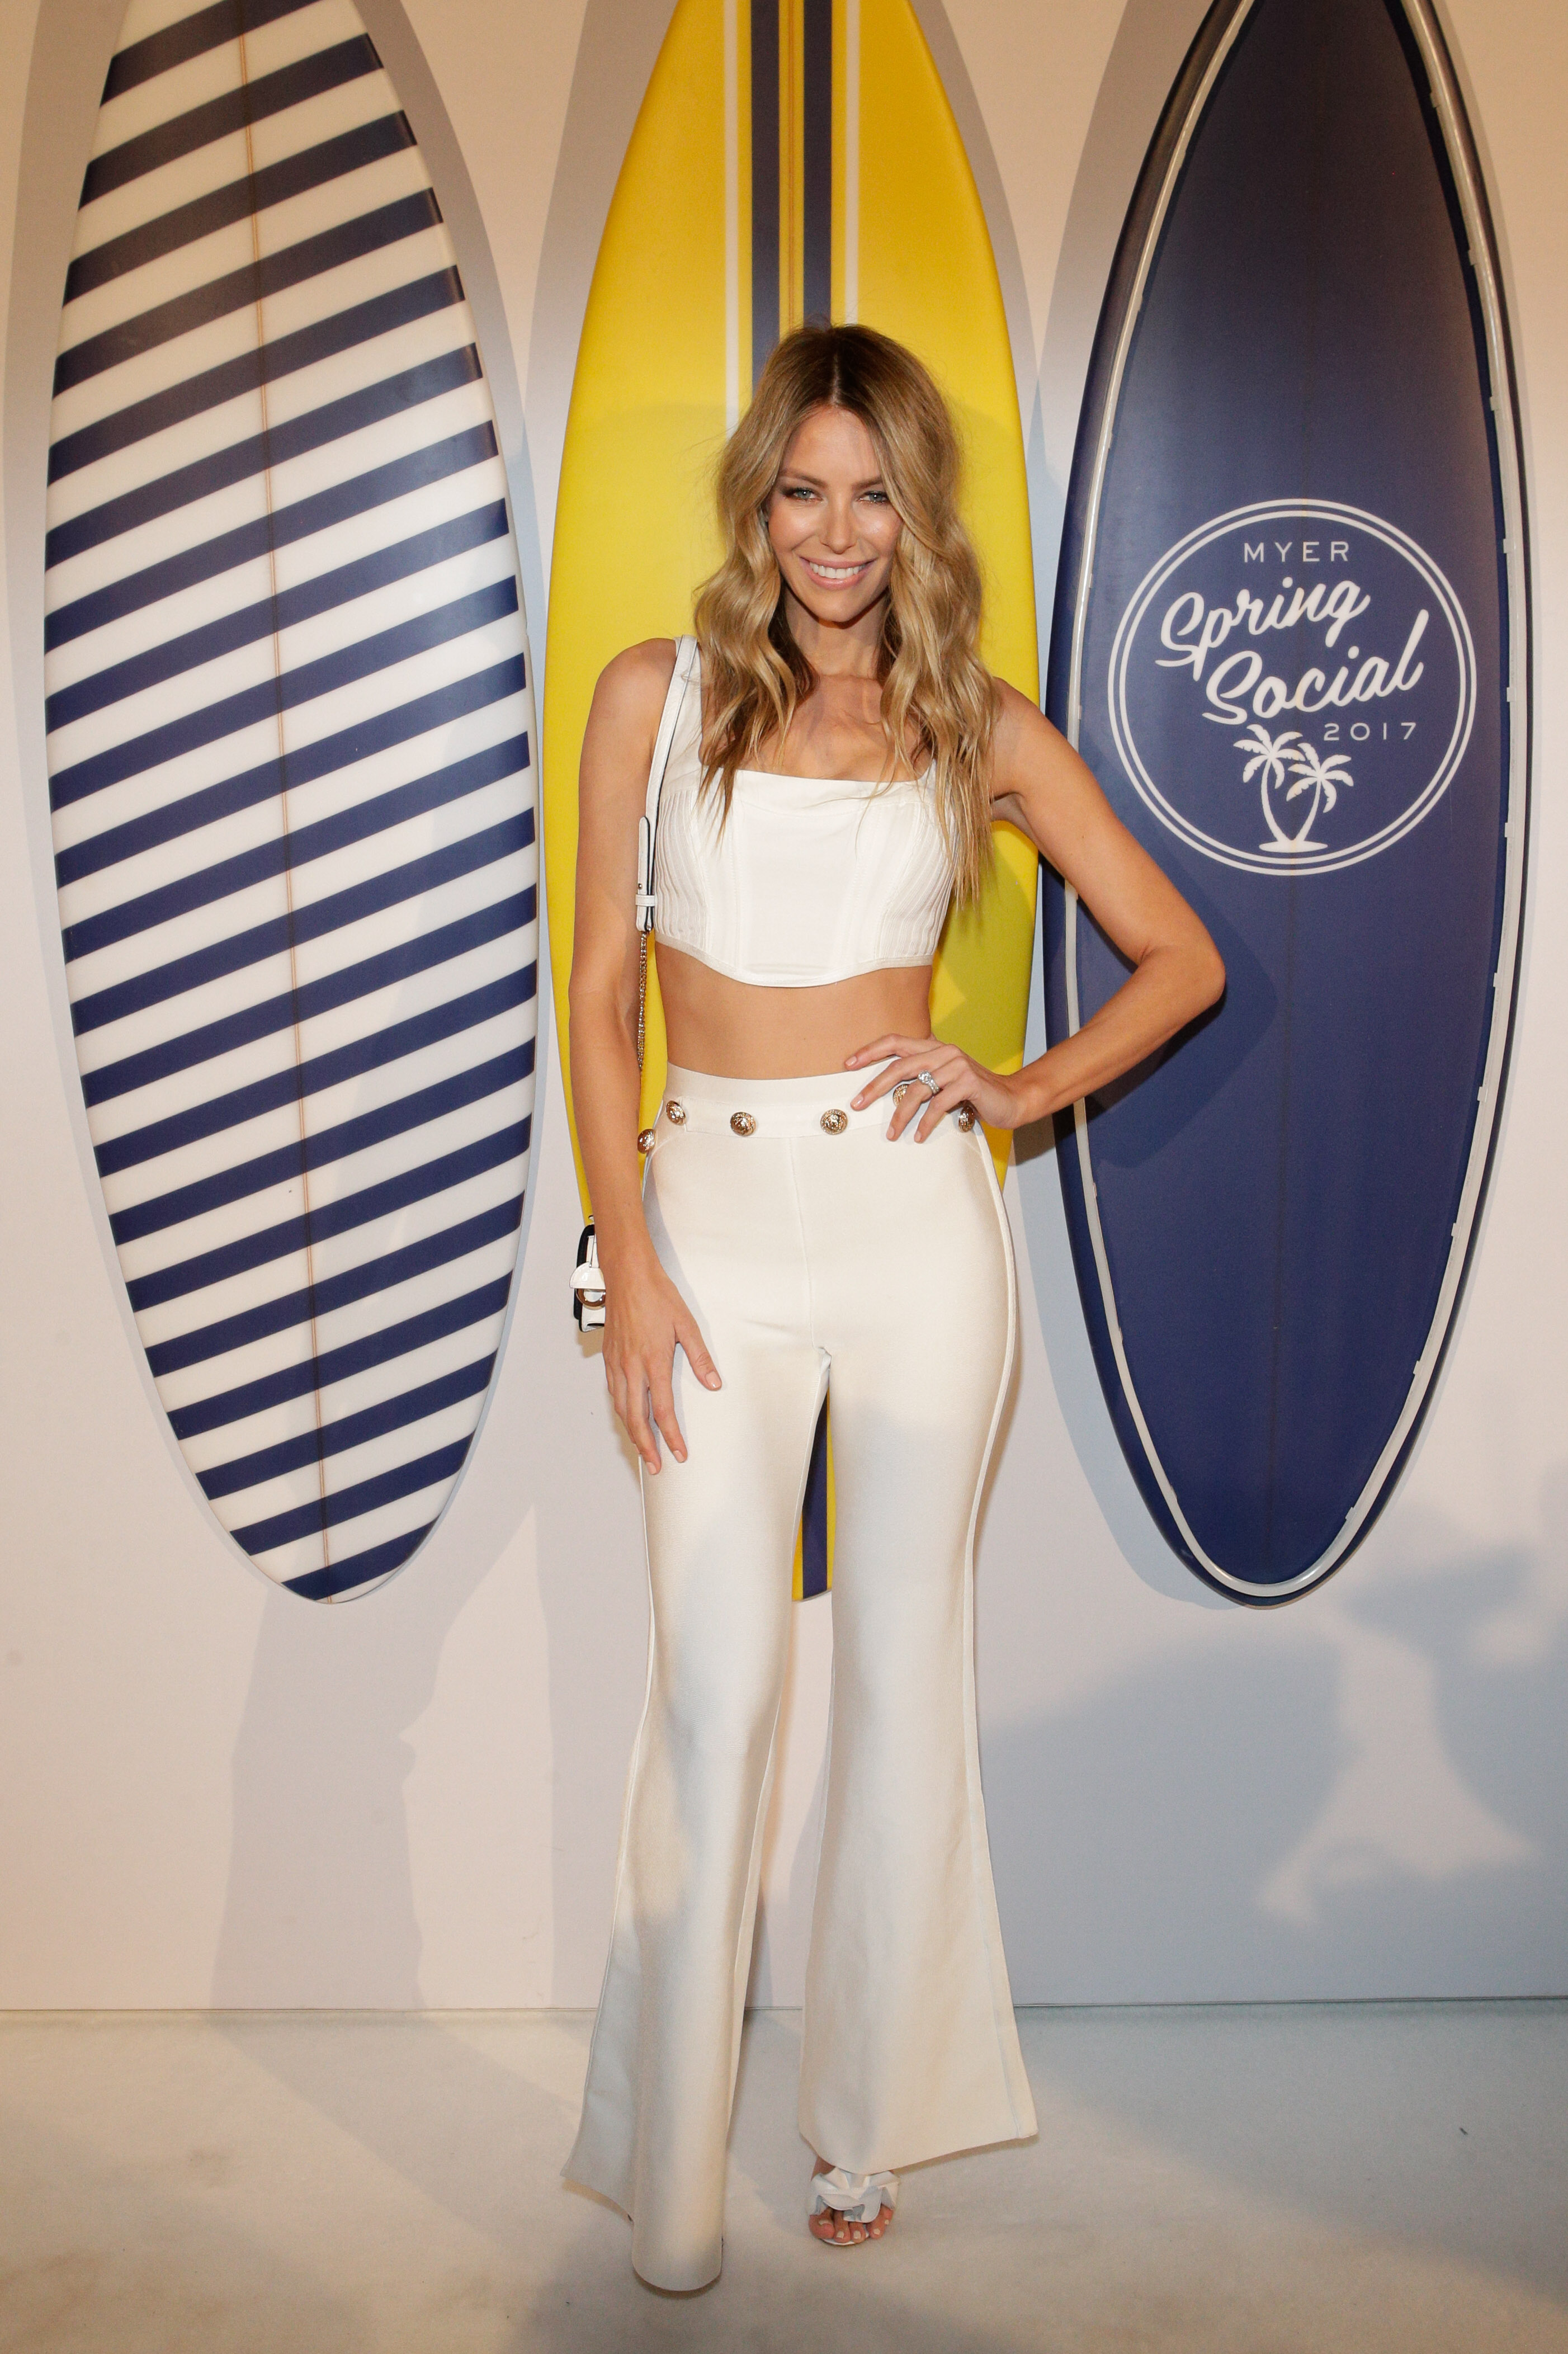 "Following an exclusive <a href=""http://style.nine.com.au/2017/08/17/16/29/gallery"" target=""_blank"">runway event</a> at a private residence in South Coogee with Myer ambassador Jennifer Hawkins and models Aleyna FitzGerald and Elyse Taylor in Maticevski, Alex Perry and Morrison, the department store celebrated with a beach party.<br /> <br /> Hawkins, Kris Smith and Jodi Anasta were joined by Instagram operators Nadia Bartel, Elyse Knowles and Natalie Roser for a DJ event at Bronte's surf life-saving club.<br /> <br /> Peking Duck set the soundtrack for summer beach vibes but the department store further confused the dress code when it comes to dressing for sandy nights.<br /> <br /> Anasta was at sea in Bronx and Banco flamenco ruffles, Knowles went for retro pin-up in Asilio, while Taylor opted for urban black in sass & bide.<br /> <br /> As usual it was up to Hawkins to lead the way, showcasing her taut midriff in a form-fitting House of CB ensemble.<br /> <br /> See the rest of the guest list here dressed for fancy dinners, sexy date nights and Netflix & Chill moments, all at the after-party."